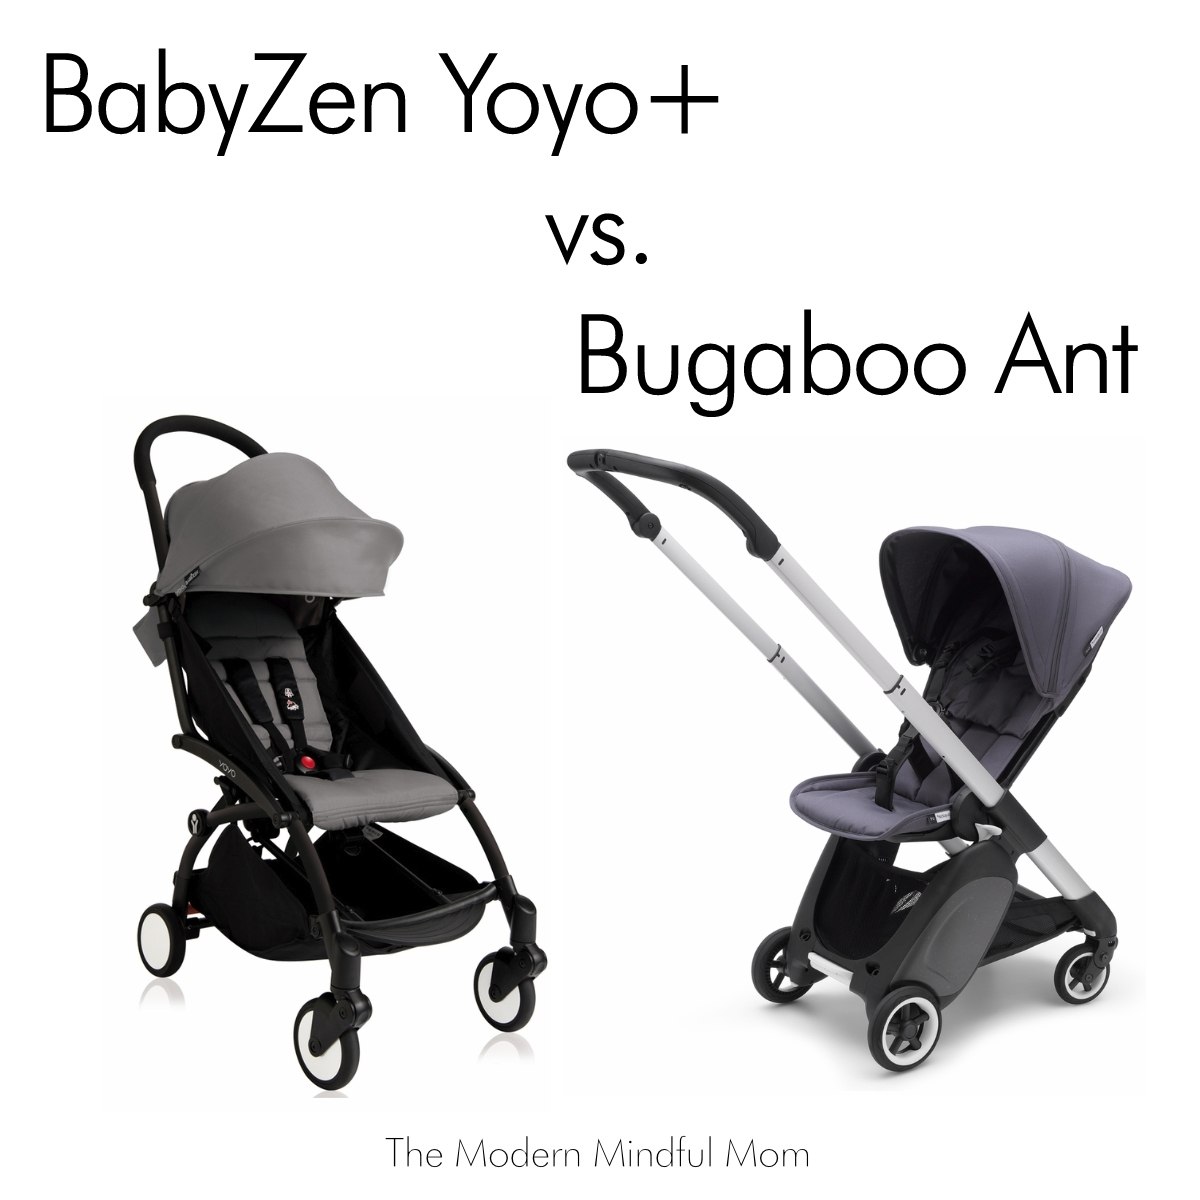 Bugaboo Stroller How To Fold Babyzen Yoyo Vs Bugaboo Ant The Modern Mindful Mom